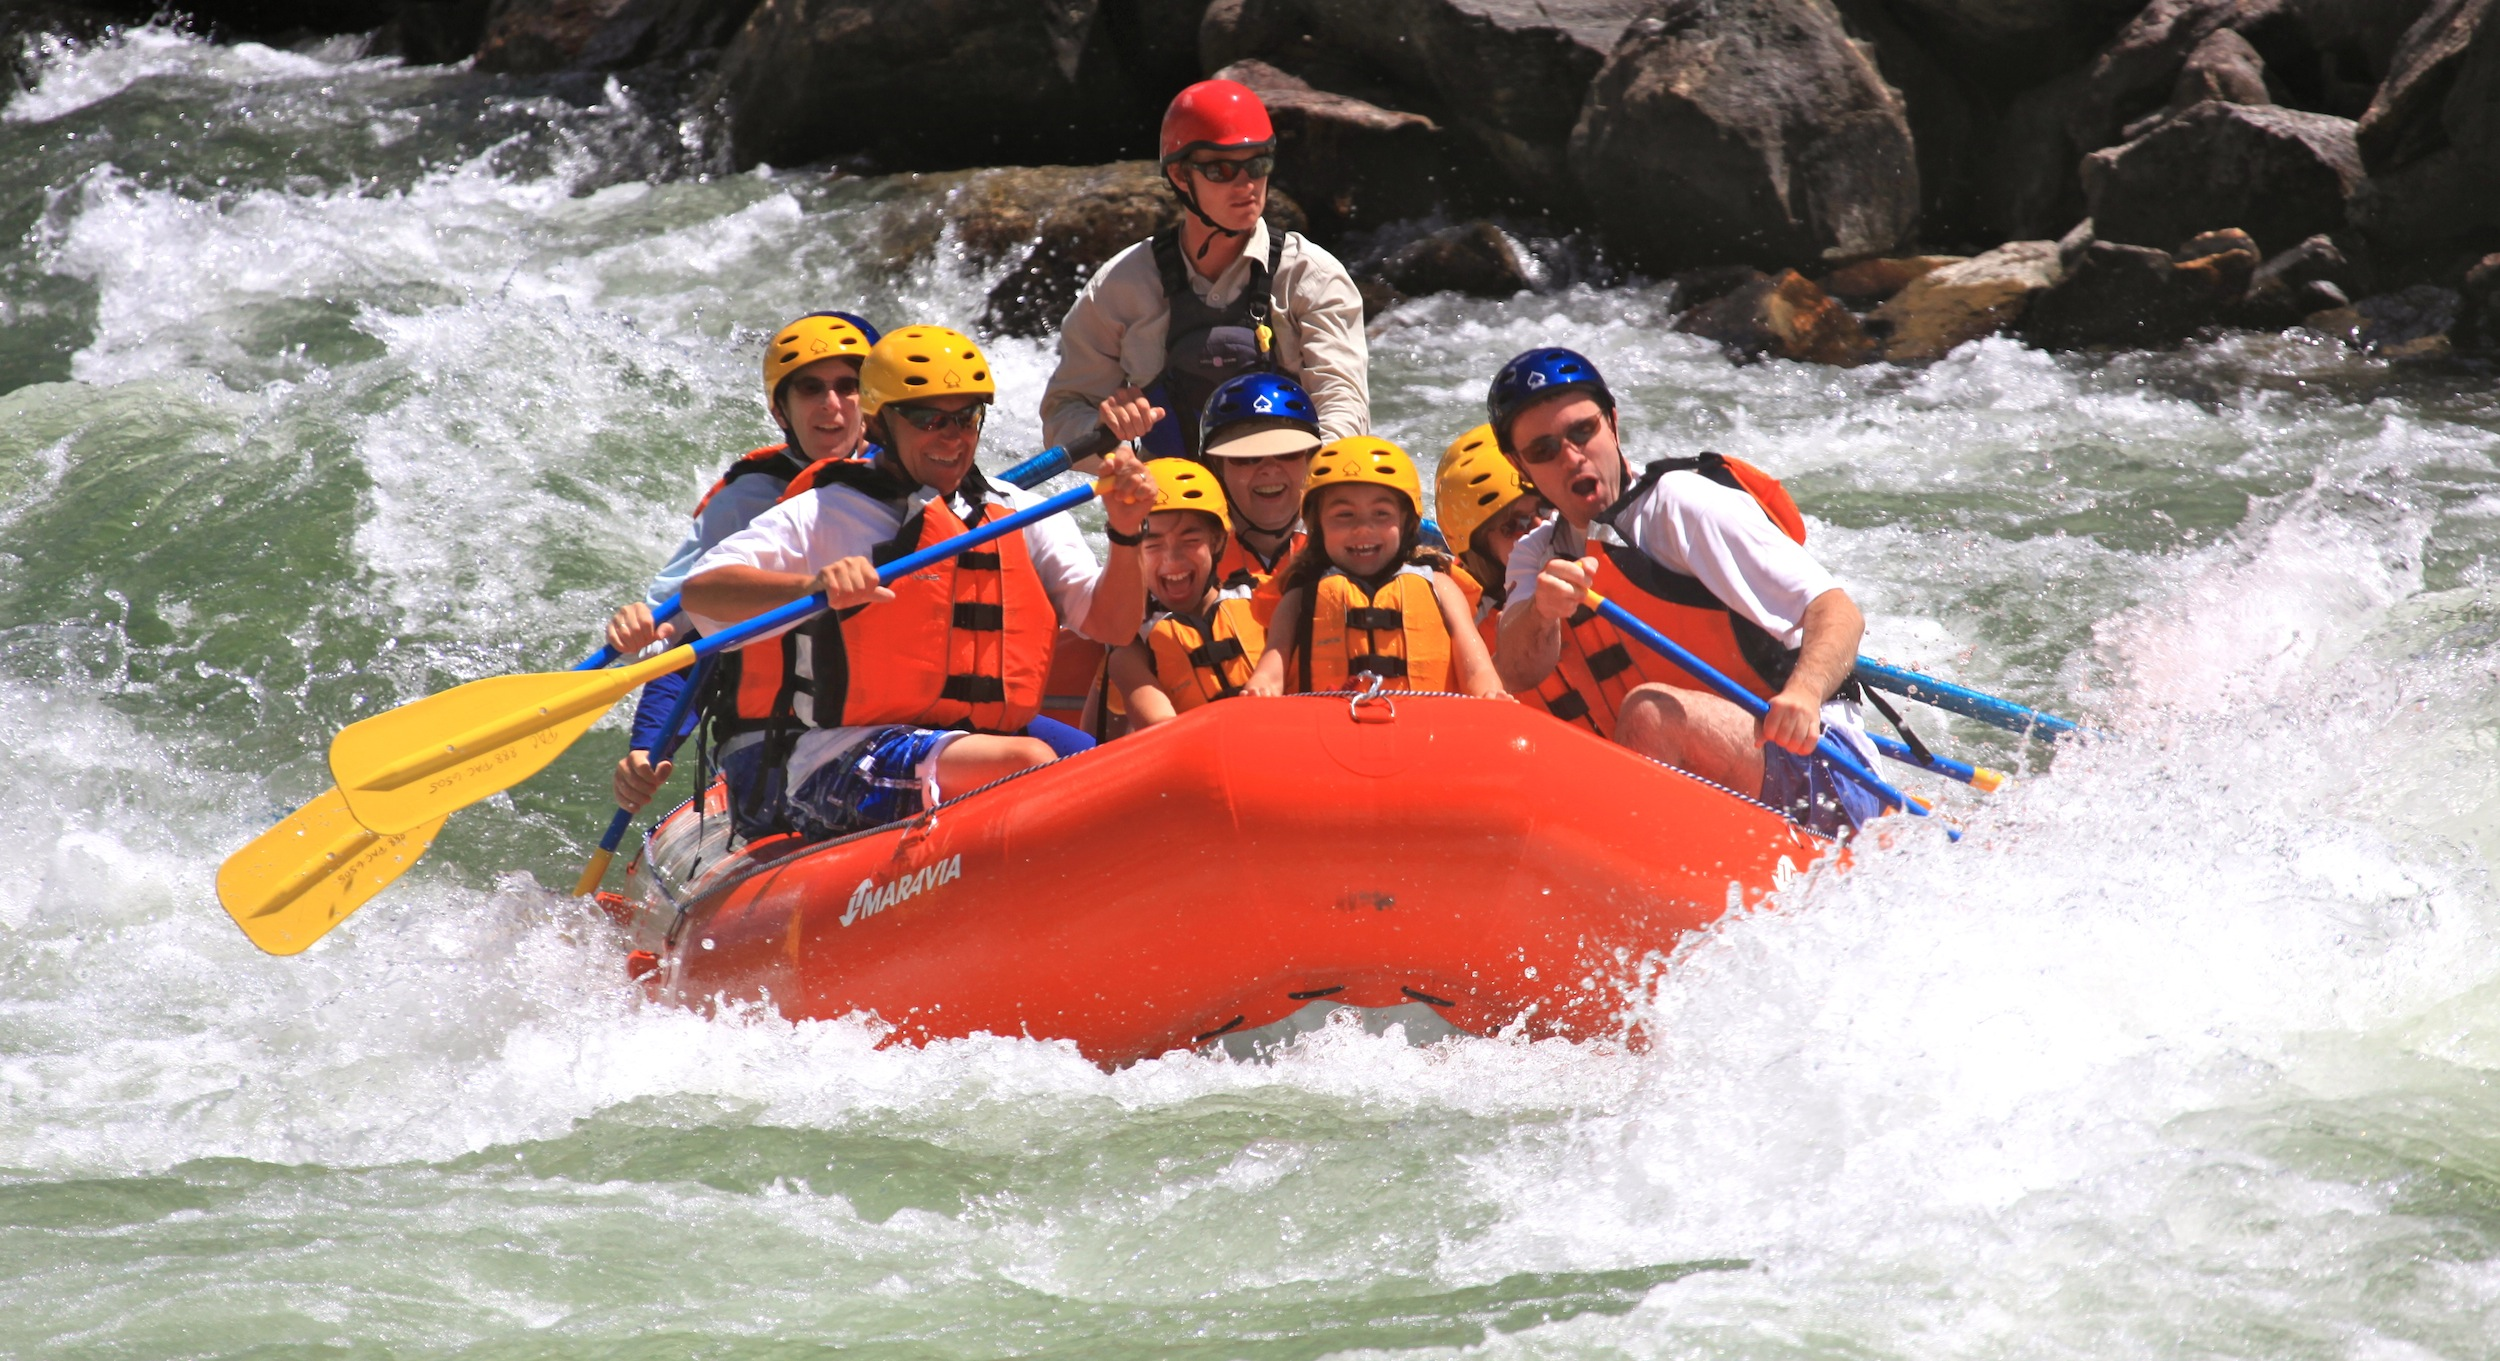 white water rafting American whitewater expeditions hosts the most exciting white water rafting trips on california's american river start your whitewater rafting adventure today.